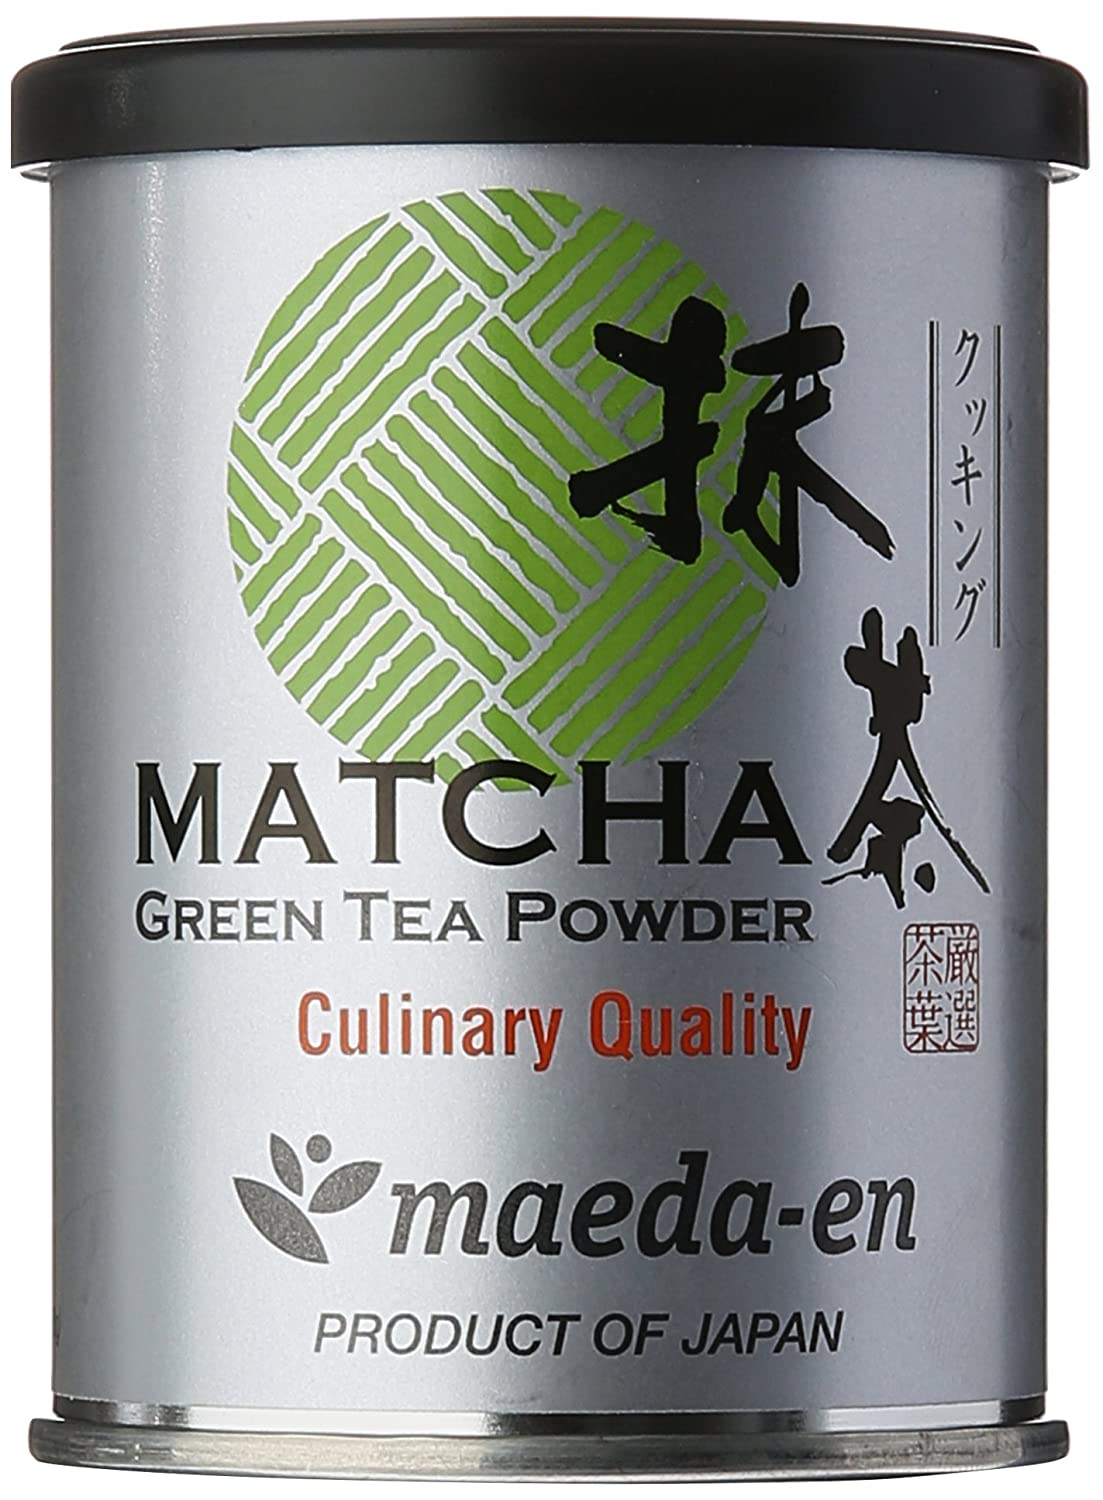 Maeda-En Matcha - Culinary Quality, 1-Ounce JFC International Inc. Matcha- culinary